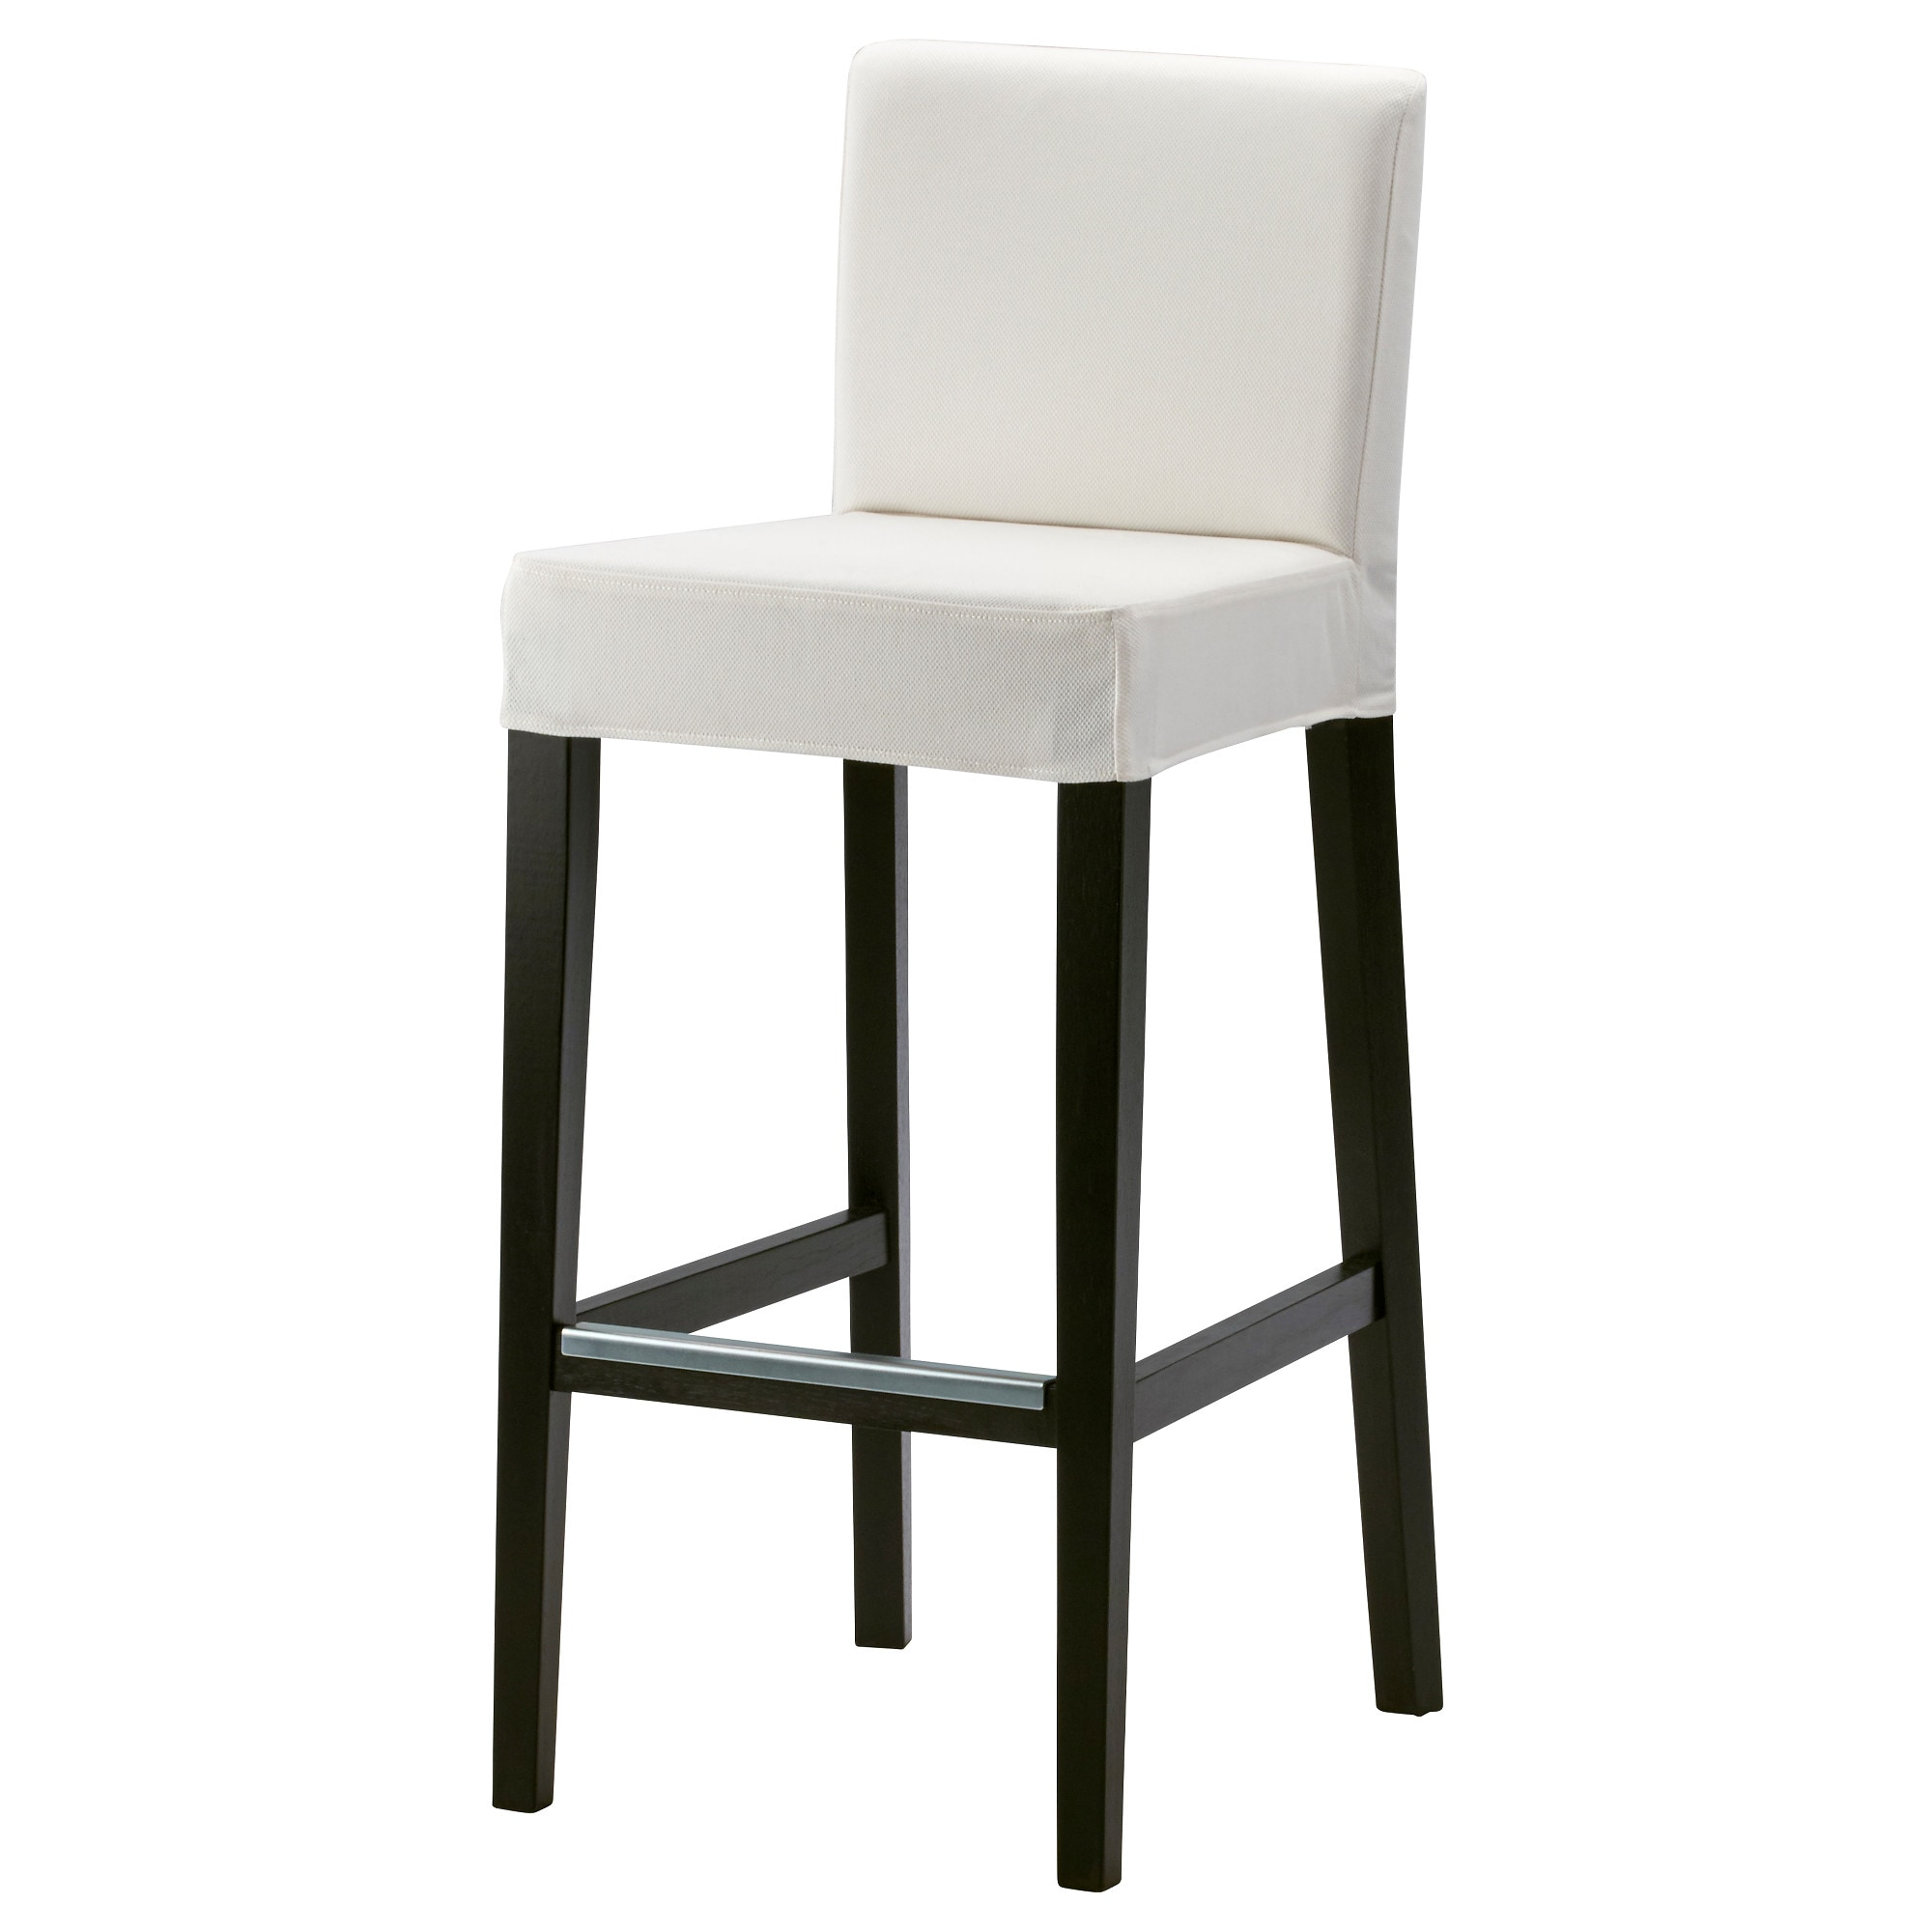 HENRIKSDAL bar stool with backrest brown black Gr sbo white Tested for